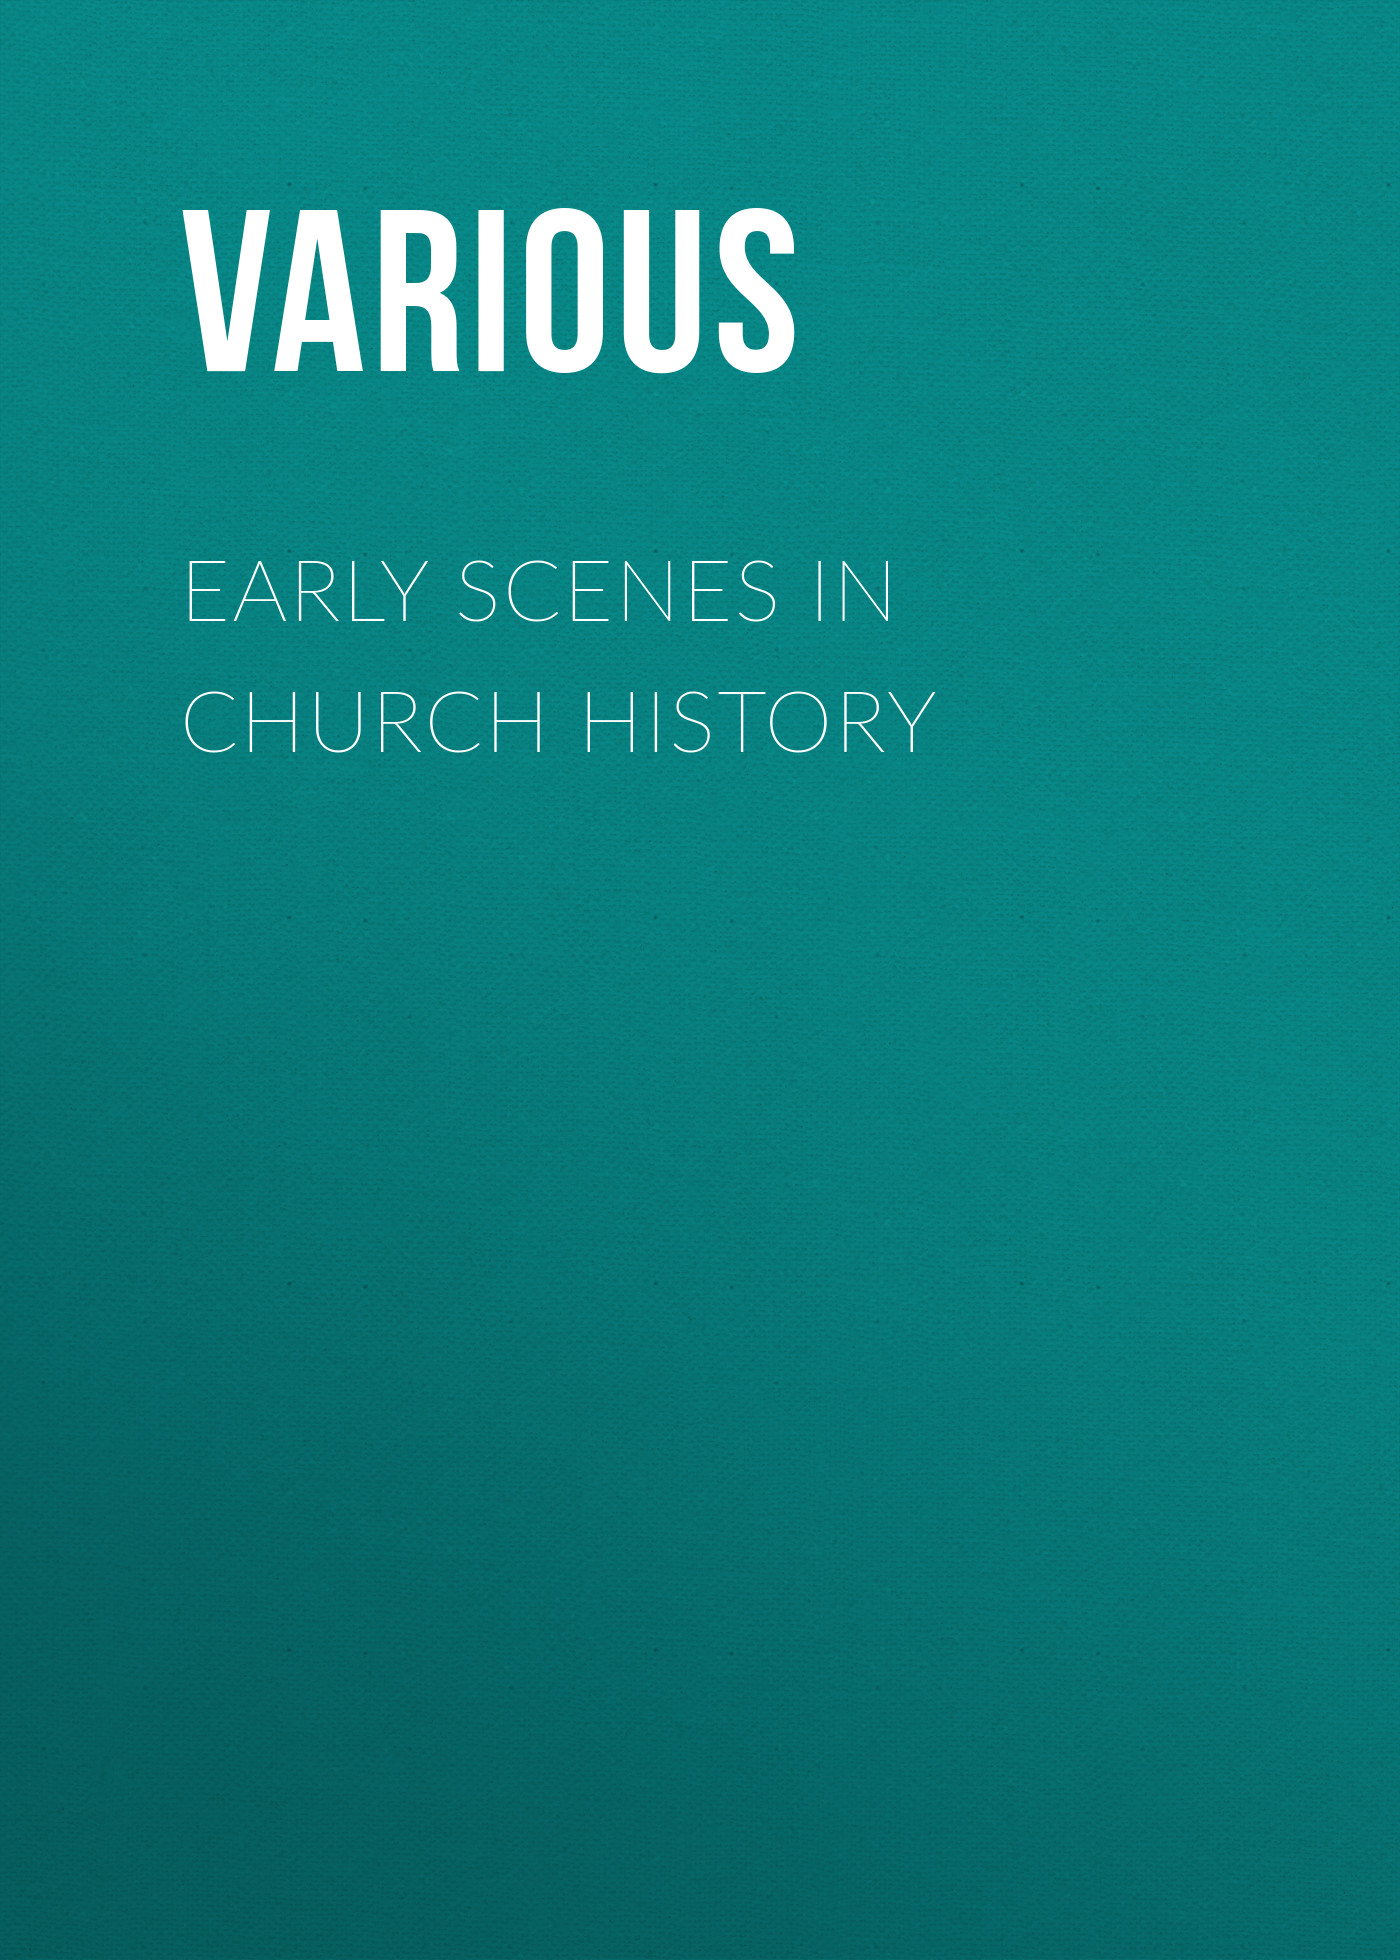 Various Early Scenes in Church History